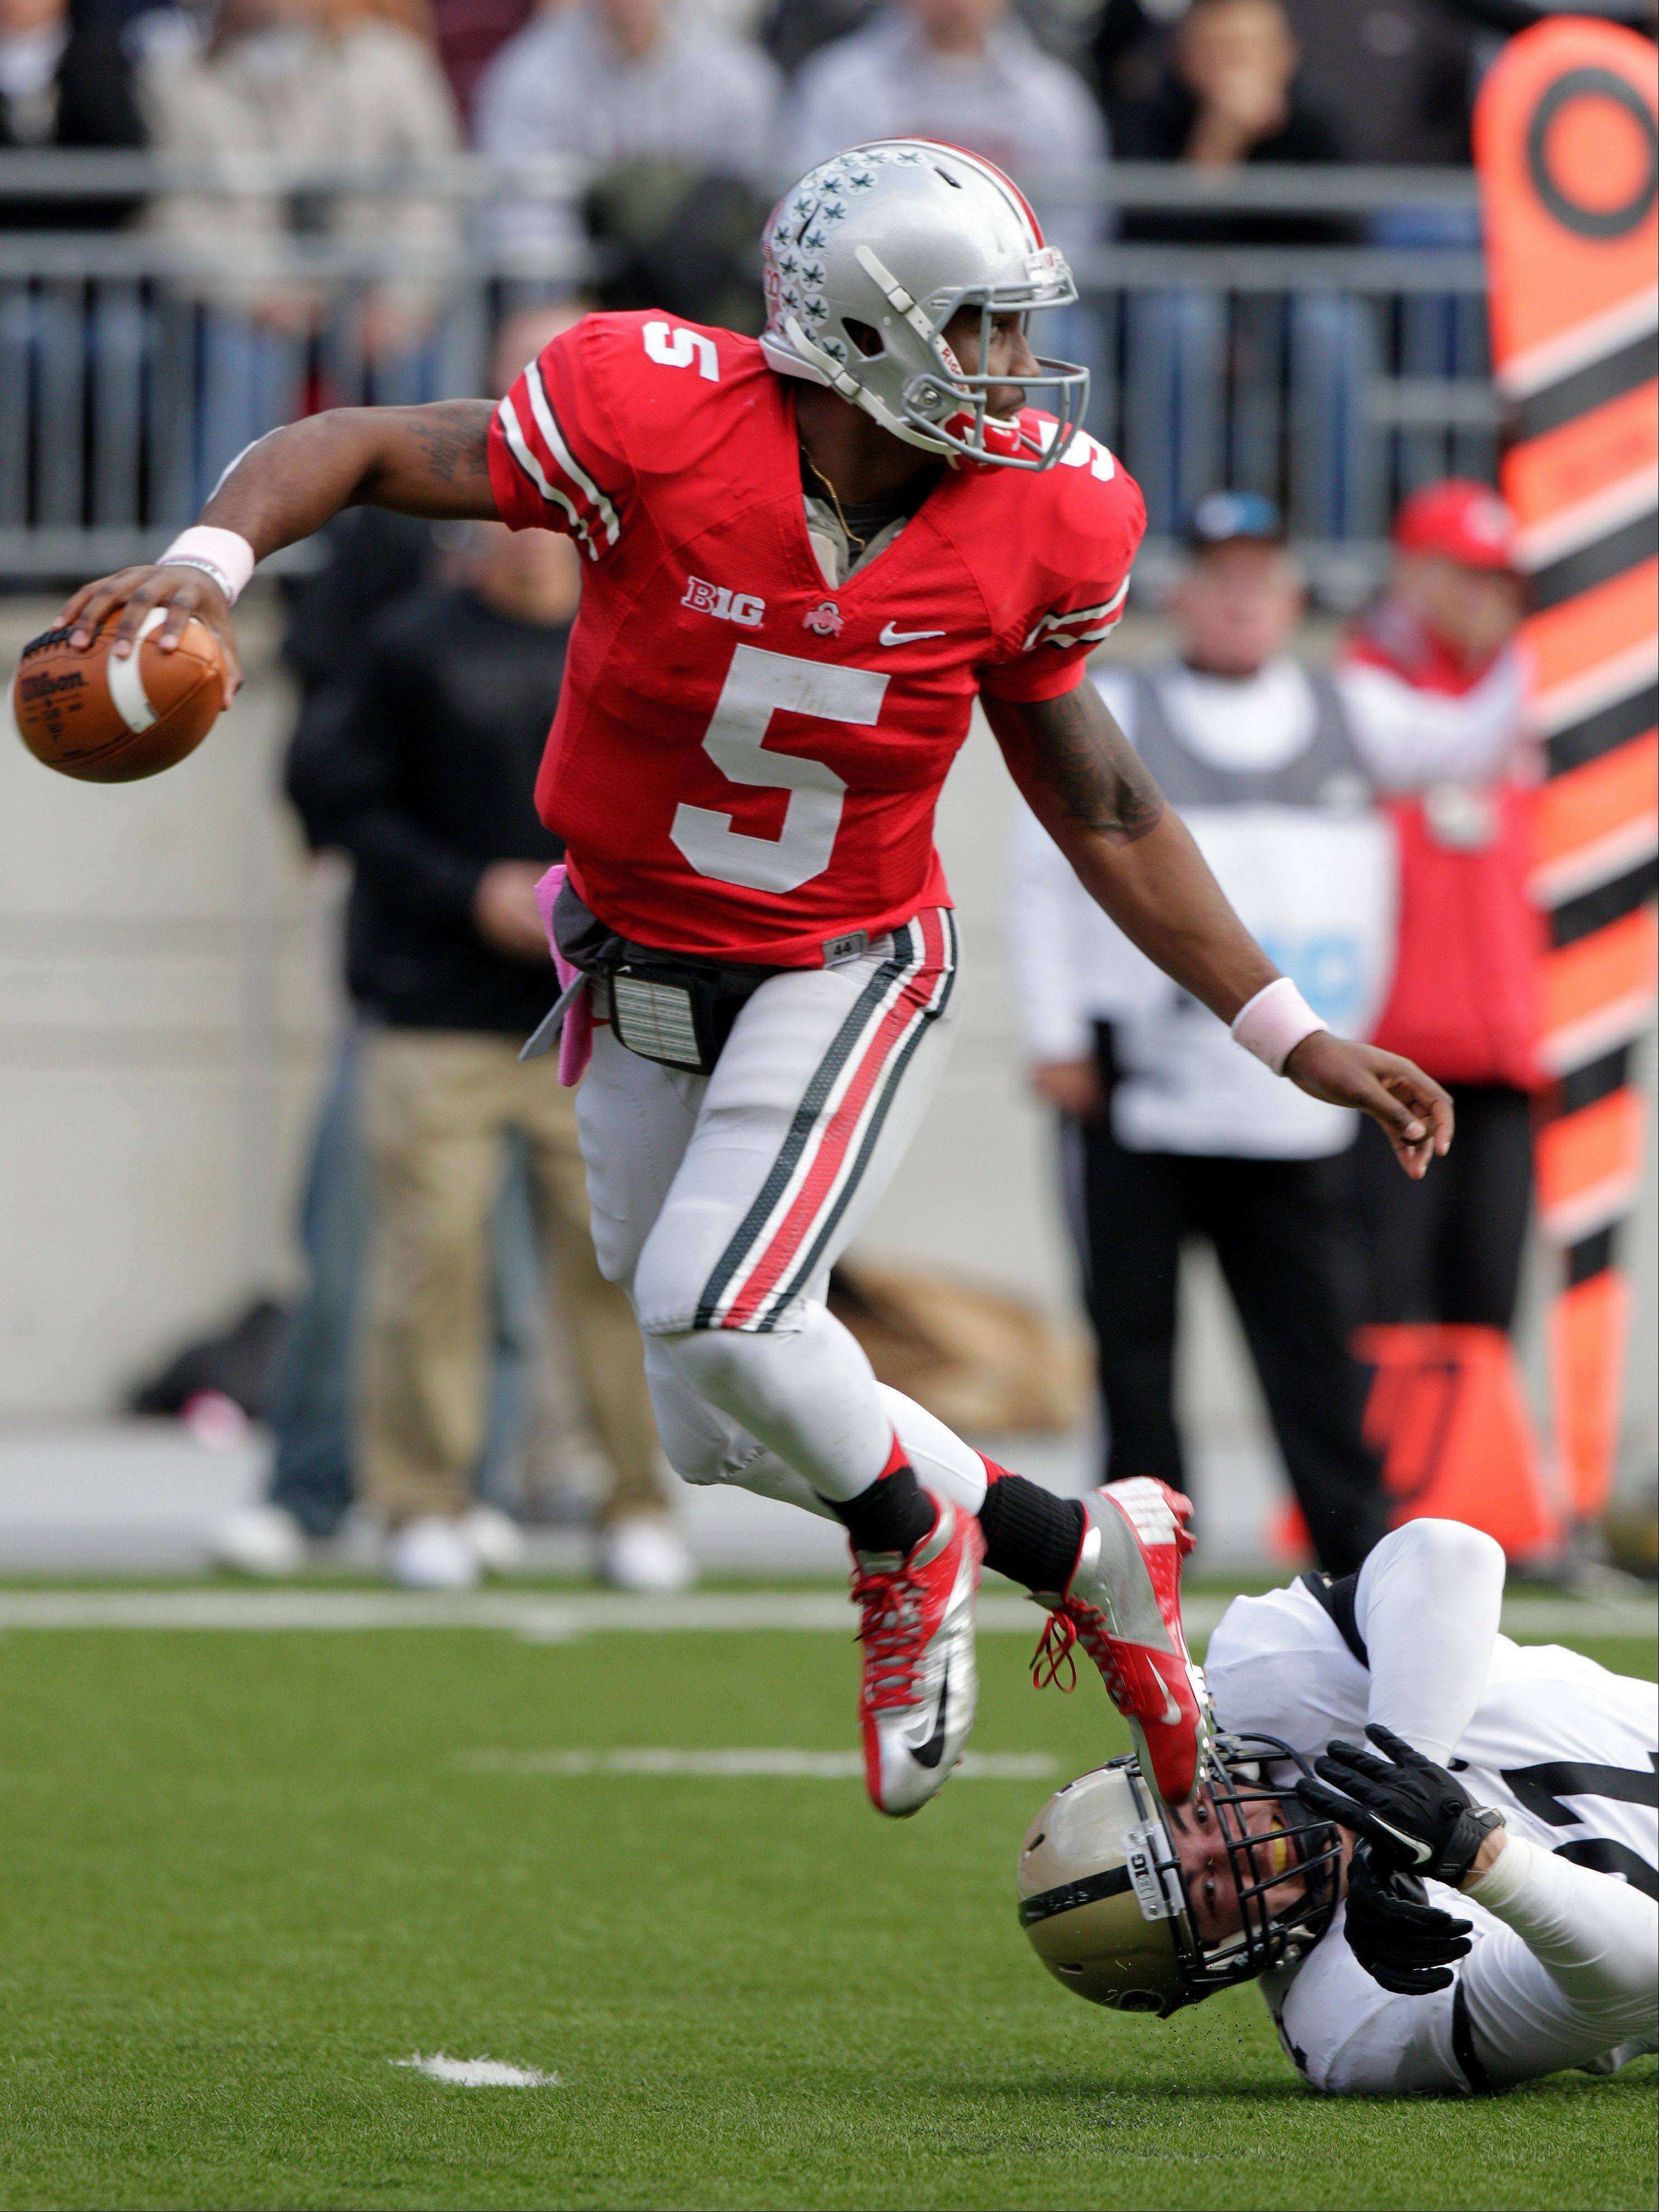 Ohio State quarterback Braxton Miller, left, escapes the grasp of Purdue defensive end Greg Latta during the second quarter of an NCAA college football game Saturday, Oct. 20, 2012, in Columbus, Ohio.